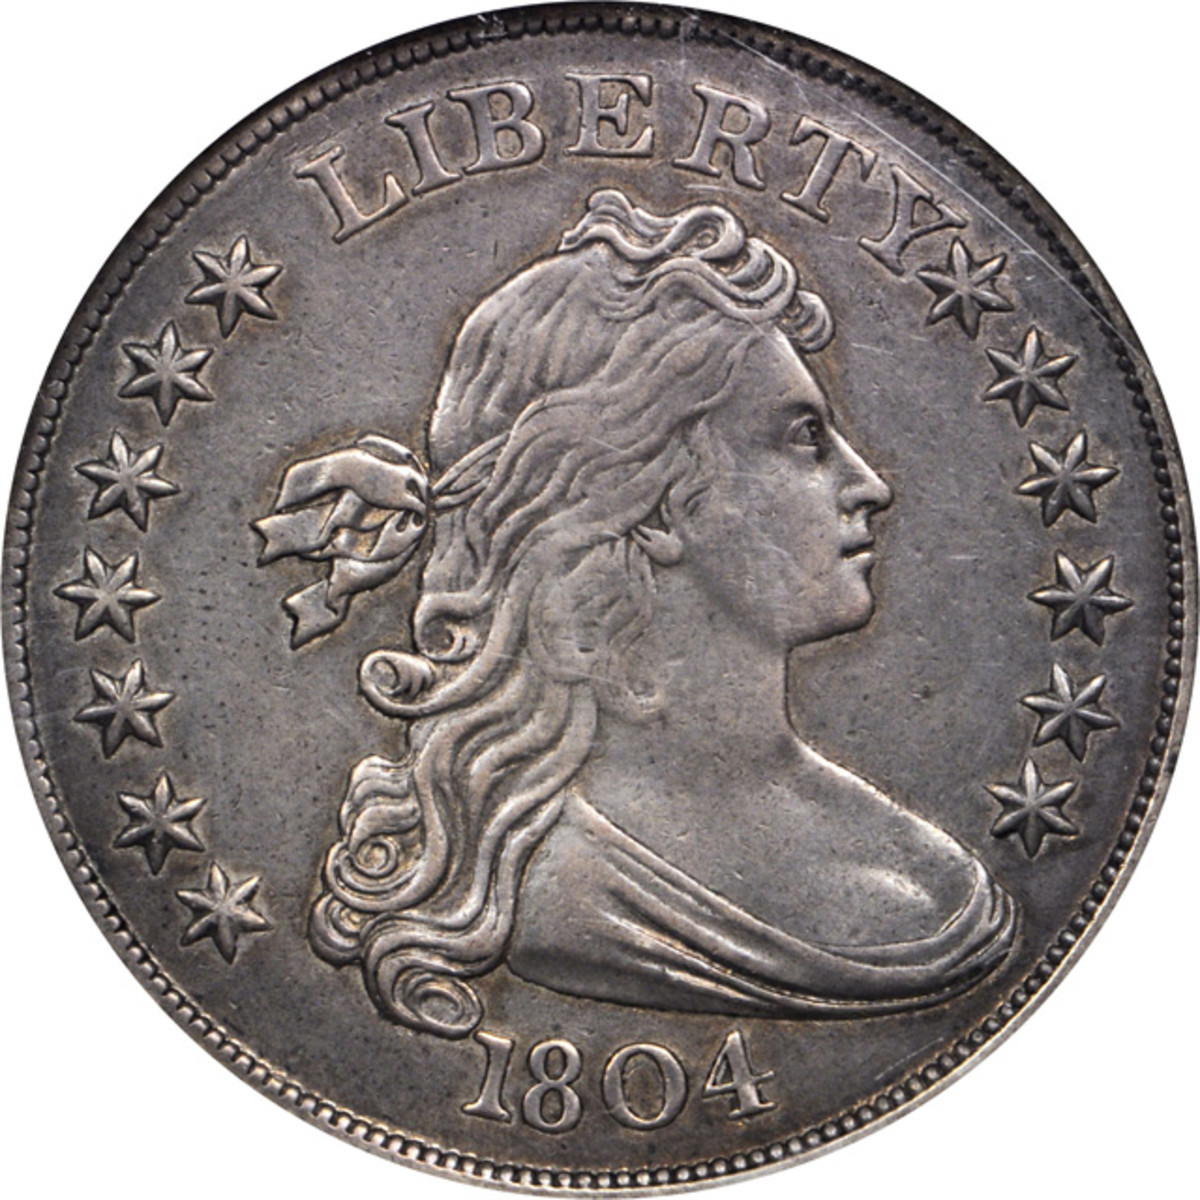 Obverse of the 1804 Class III silver dollar that was sold at the auction for